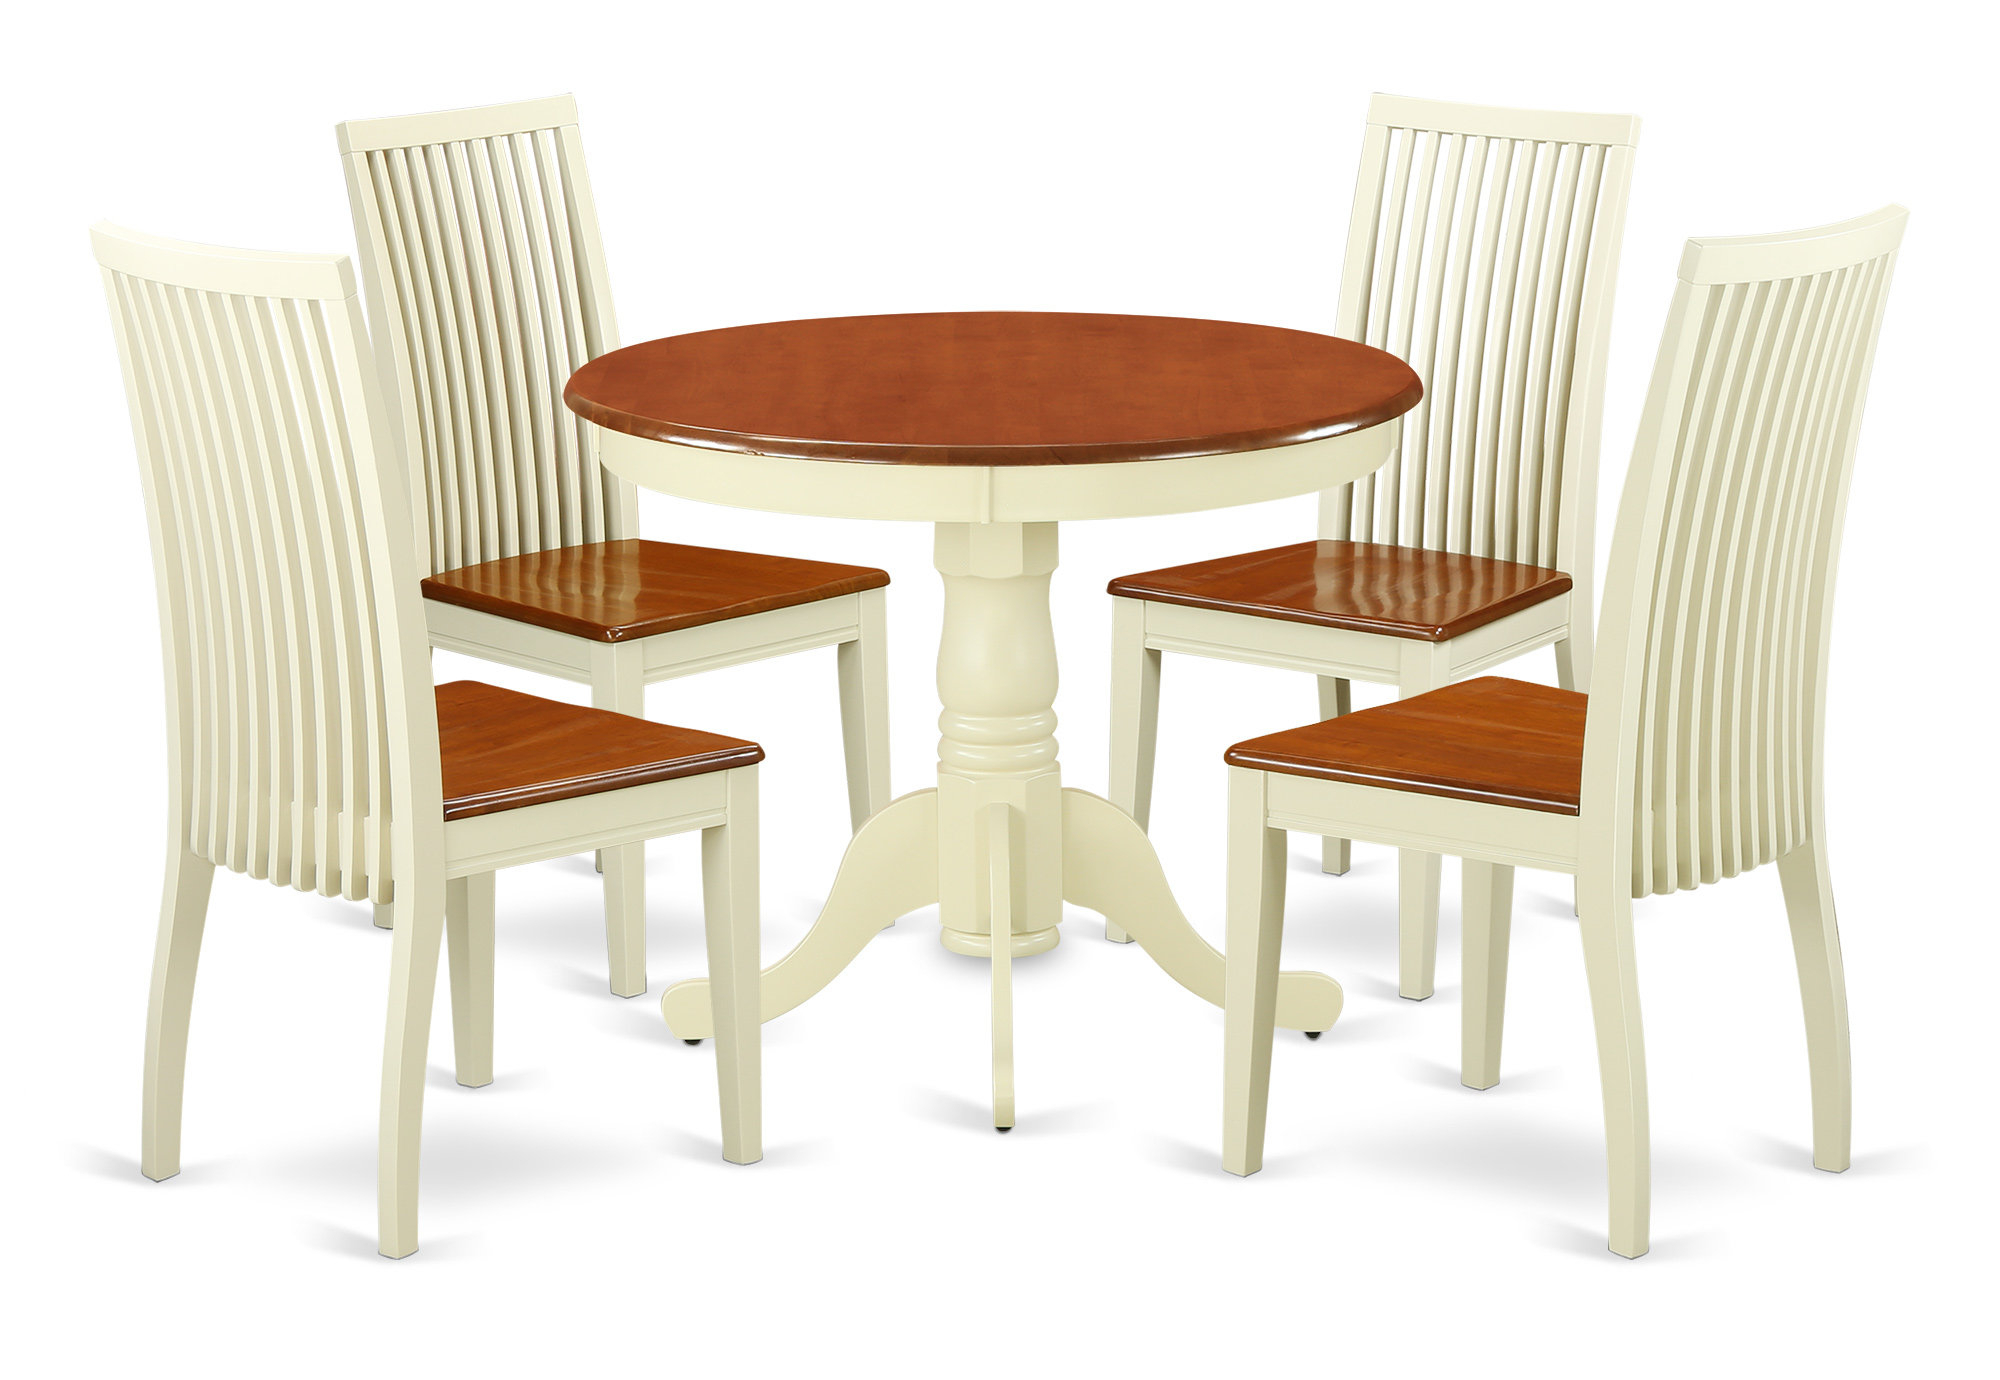 August Grove Brendan 5 Piece Breakfast Nook Solid Wood Dining Set With Trendy 5 Piece Breakfast Nook Dining Sets (View 9 of 25)